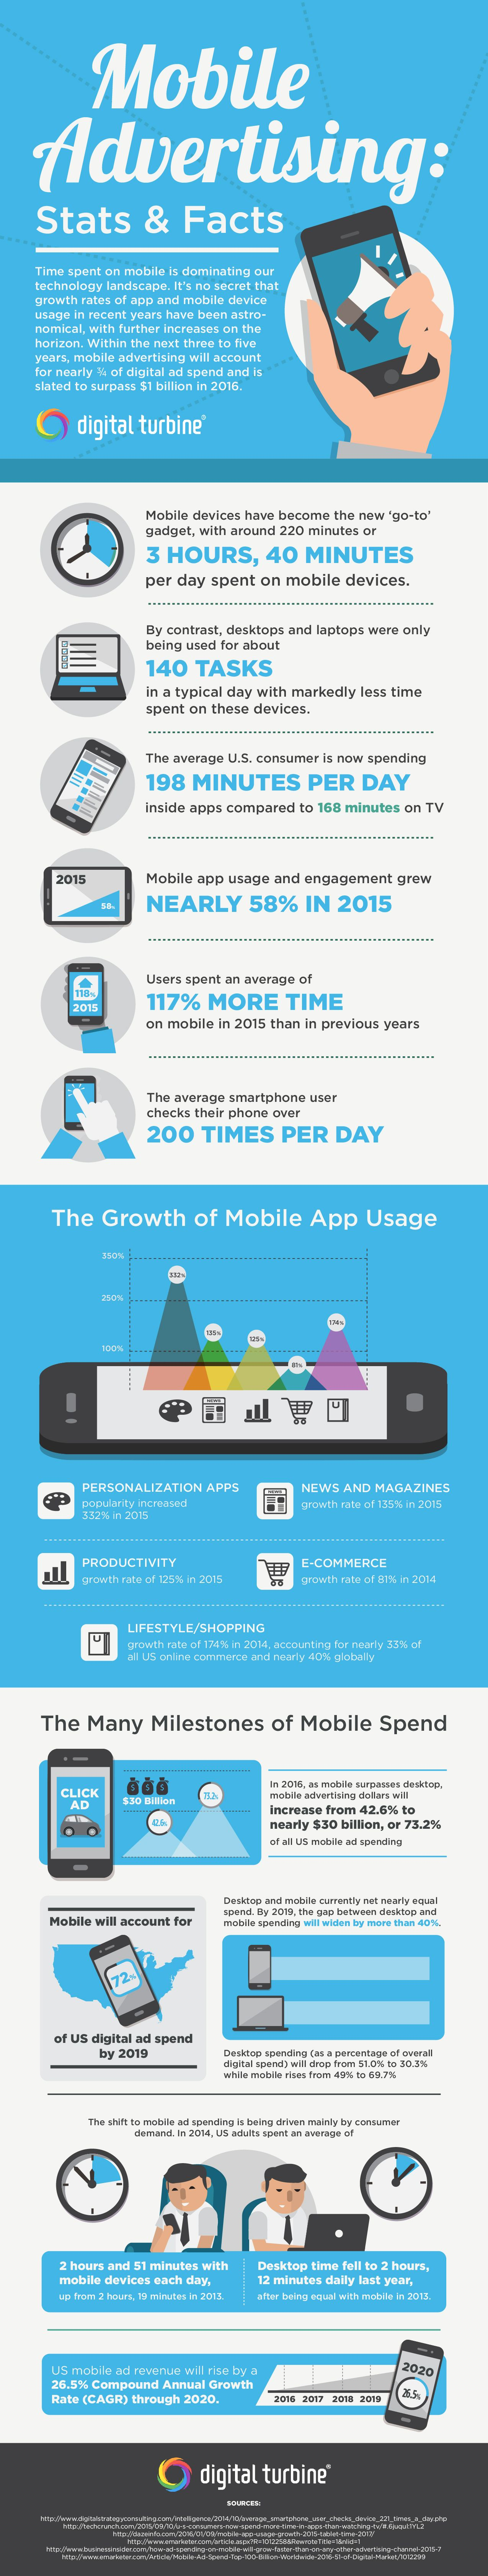 Handy statistics and infographic on smartphone and app usage for your mobile marketing strategy